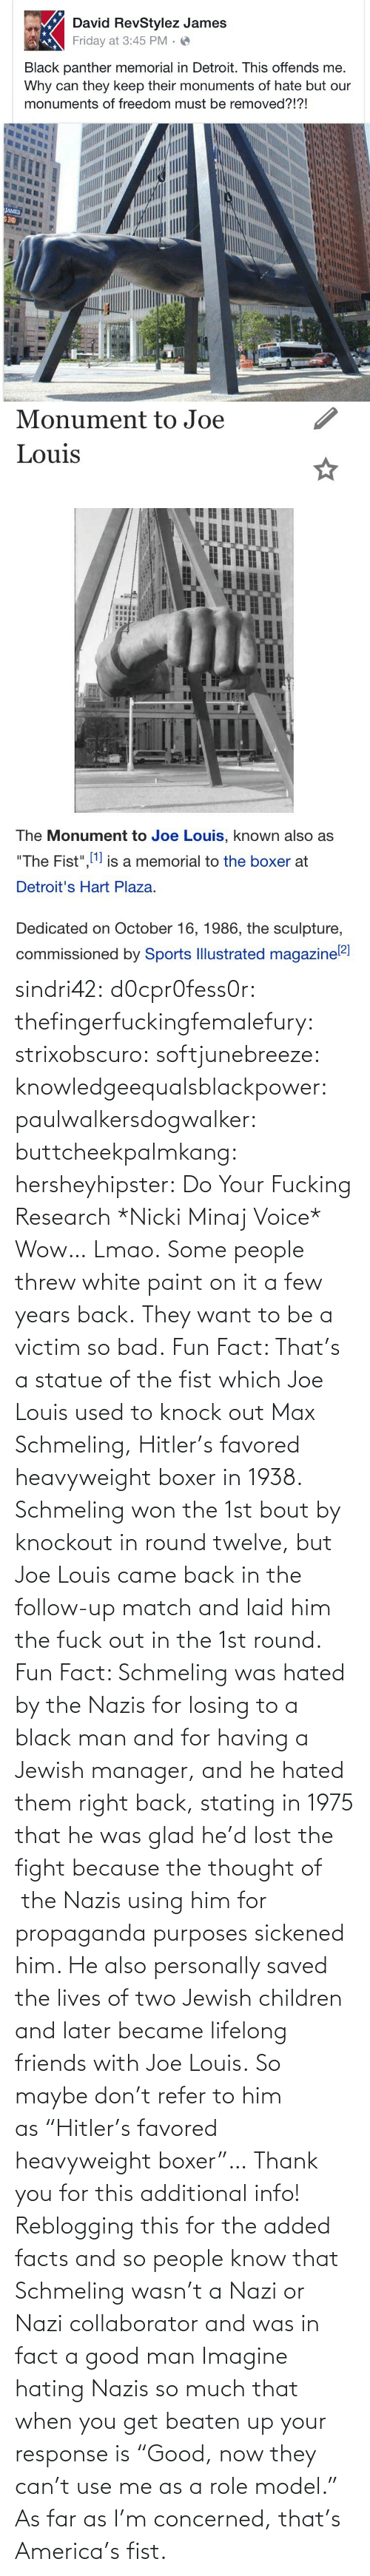 "don: sindri42:  d0cpr0fess0r:  thefingerfuckingfemalefury:  strixobscuro:  softjunebreeze:  knowledgeequalsblackpower:  paulwalkersdogwalker:   buttcheekpalmkang:   hersheyhipster:  Do Your Fucking Research *Nicki Minaj Voice*    Wow… Lmao.   Some people threw white paint on it a few years back.   They want to be a victim so bad.  Fun Fact: That's a statue of the fist which Joe Louis used to knock out Max Schmeling, Hitler's favored heavyweight boxer in 1938. Schmeling won the 1st bout by knockout in round twelve, but Joe Louis came back in the follow-up match and laid him the fuck out in the 1st round.  Fun Fact: Schmeling was hated by the Nazis for losing to a black man and for having a Jewish manager, and he hated them right back, stating in 1975 that he was glad he'd lost the fight because the thought of  the Nazis using him for propaganda purposes sickened him. He also personally saved the lives of two Jewish children and later became lifelong friends with Joe Louis. So maybe don't refer to him as ""Hitler's favored heavyweight boxer""…  Thank you for this additional info! Reblogging this for the added facts and so people know that Schmeling wasn't a Nazi or Nazi collaborator and was in fact a good man   Imagine hating Nazis so much that when you get beaten up your response is ""Good, now they can't use me as a role model.""  As far as I'm concerned, that's America's fist."